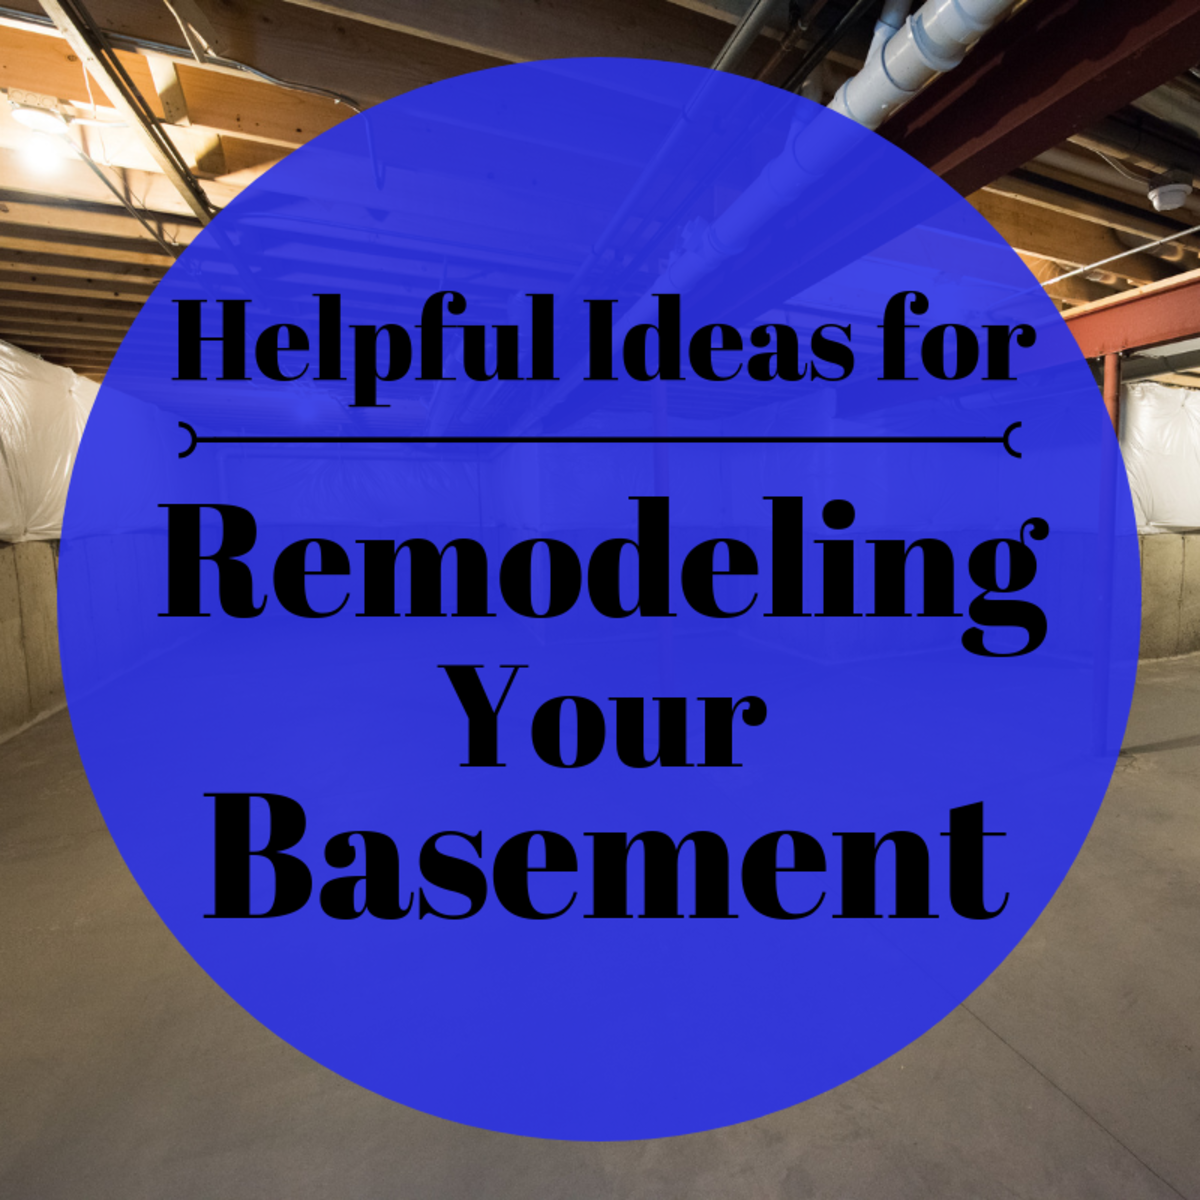 If you're thinking of remodeling your basement and need a little help getting the project off the ground, check out this helpful guide on low-cost basement finishing ideas!